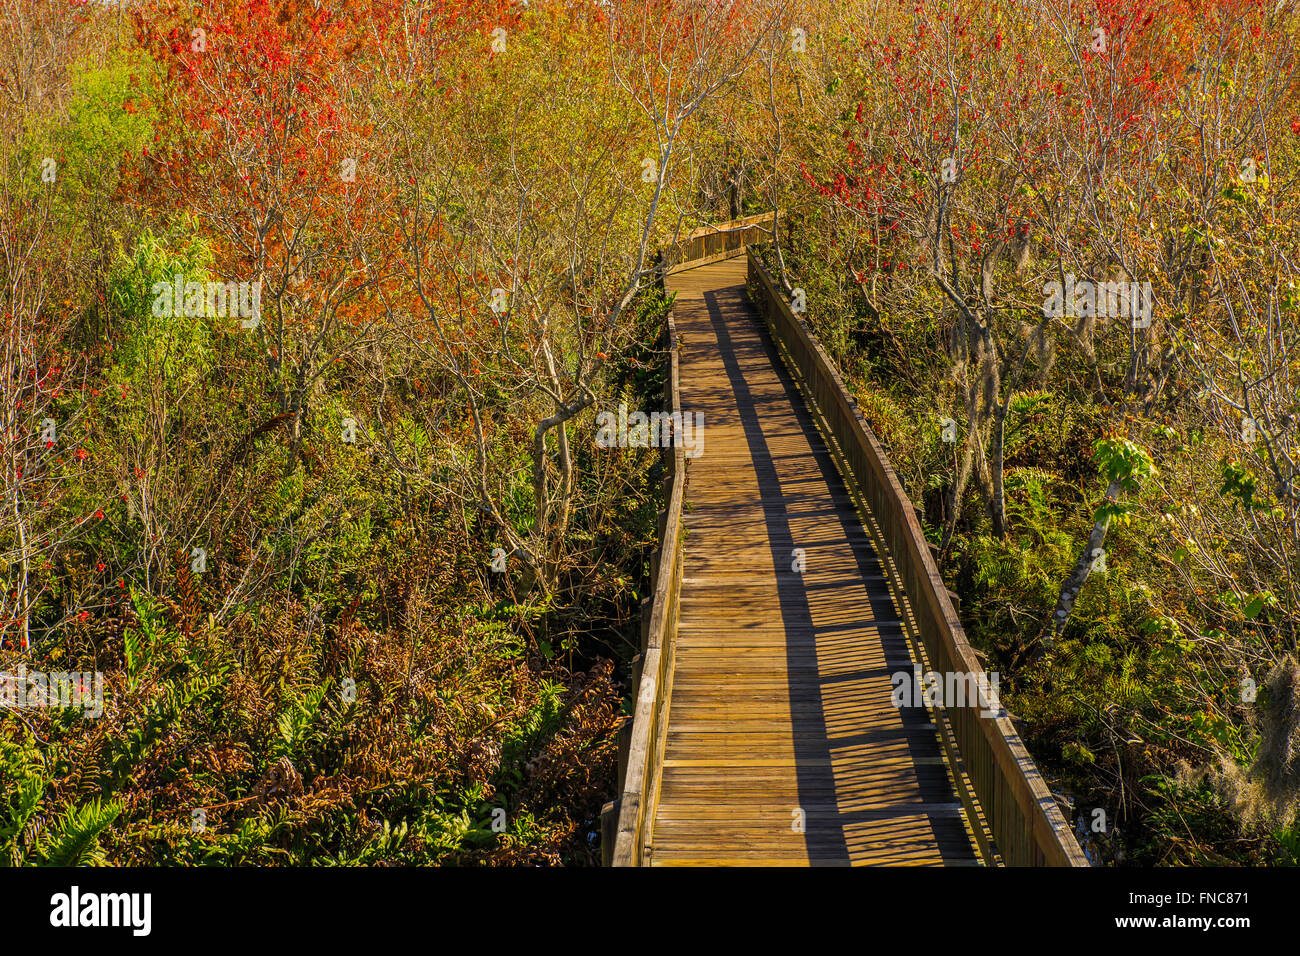 Through the Woods - Boardwalk at Sawgrass Lake Park from observation deck - Stock Image